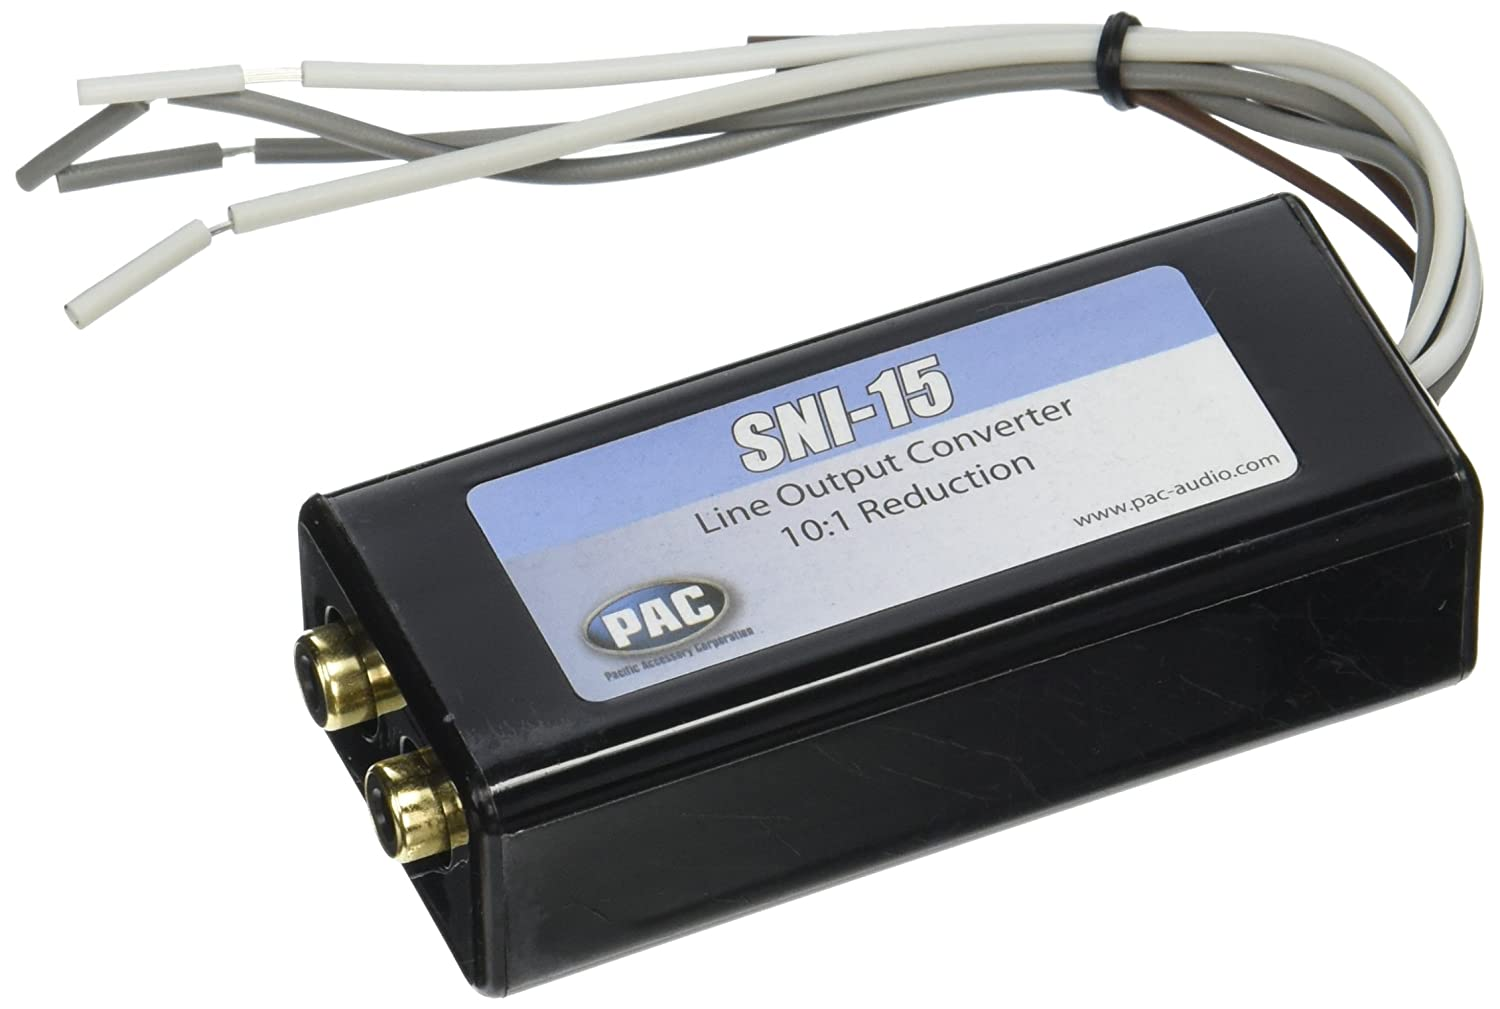 71UQXrYWczL._SL1500_ amazon com pac sni15 line output converter for adding amplifier Line Out Converter Wiring Common Ground at fashall.co